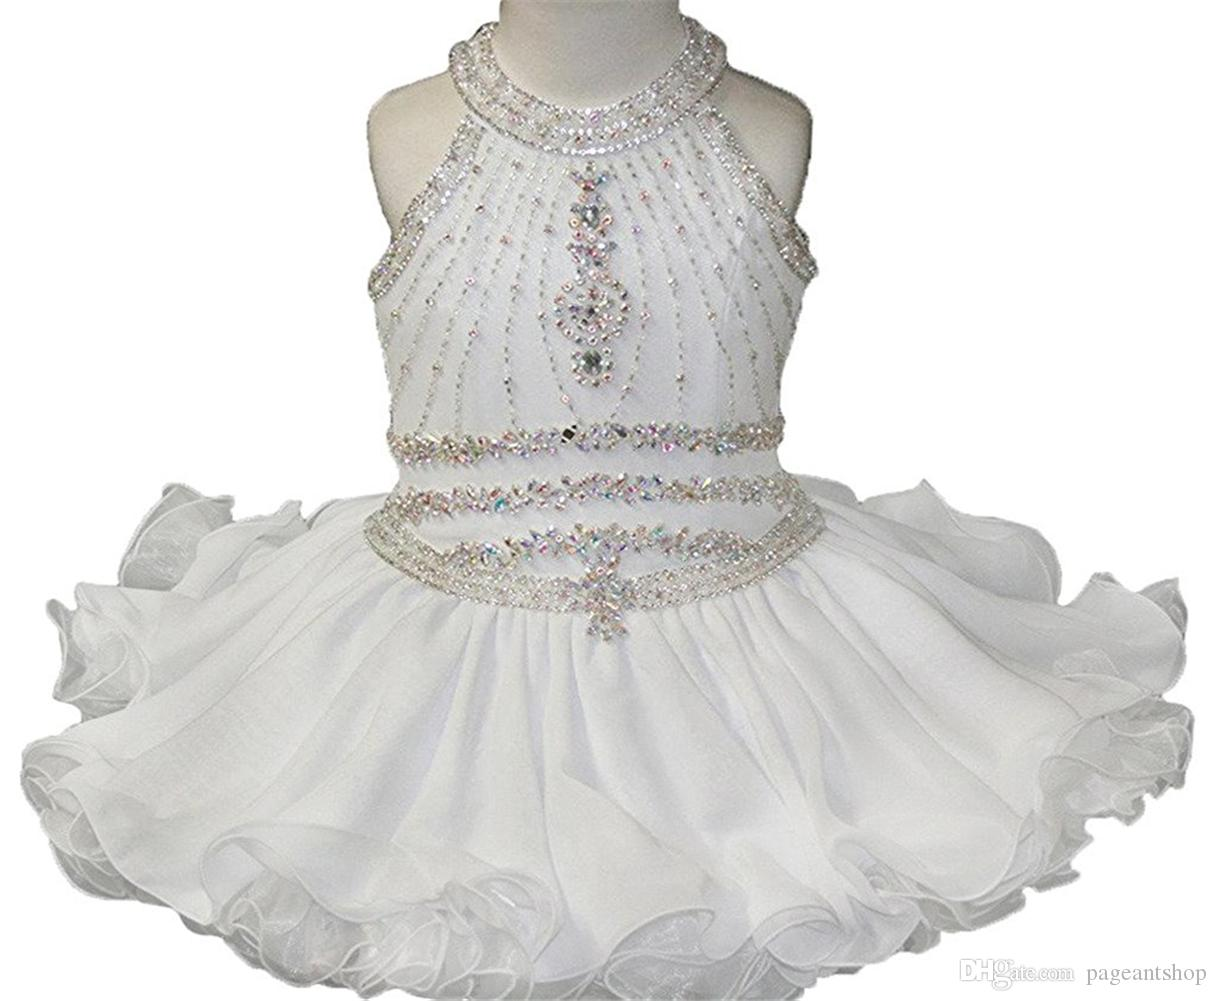 5bd2e9a0e Baby Girls Halter White Pageant Cupcake Dresses Toddler Glitz Mini Short  Birthday Party Gowns Infant Formal Wear Dresses Kids Gowns Latest Gowns  From ...